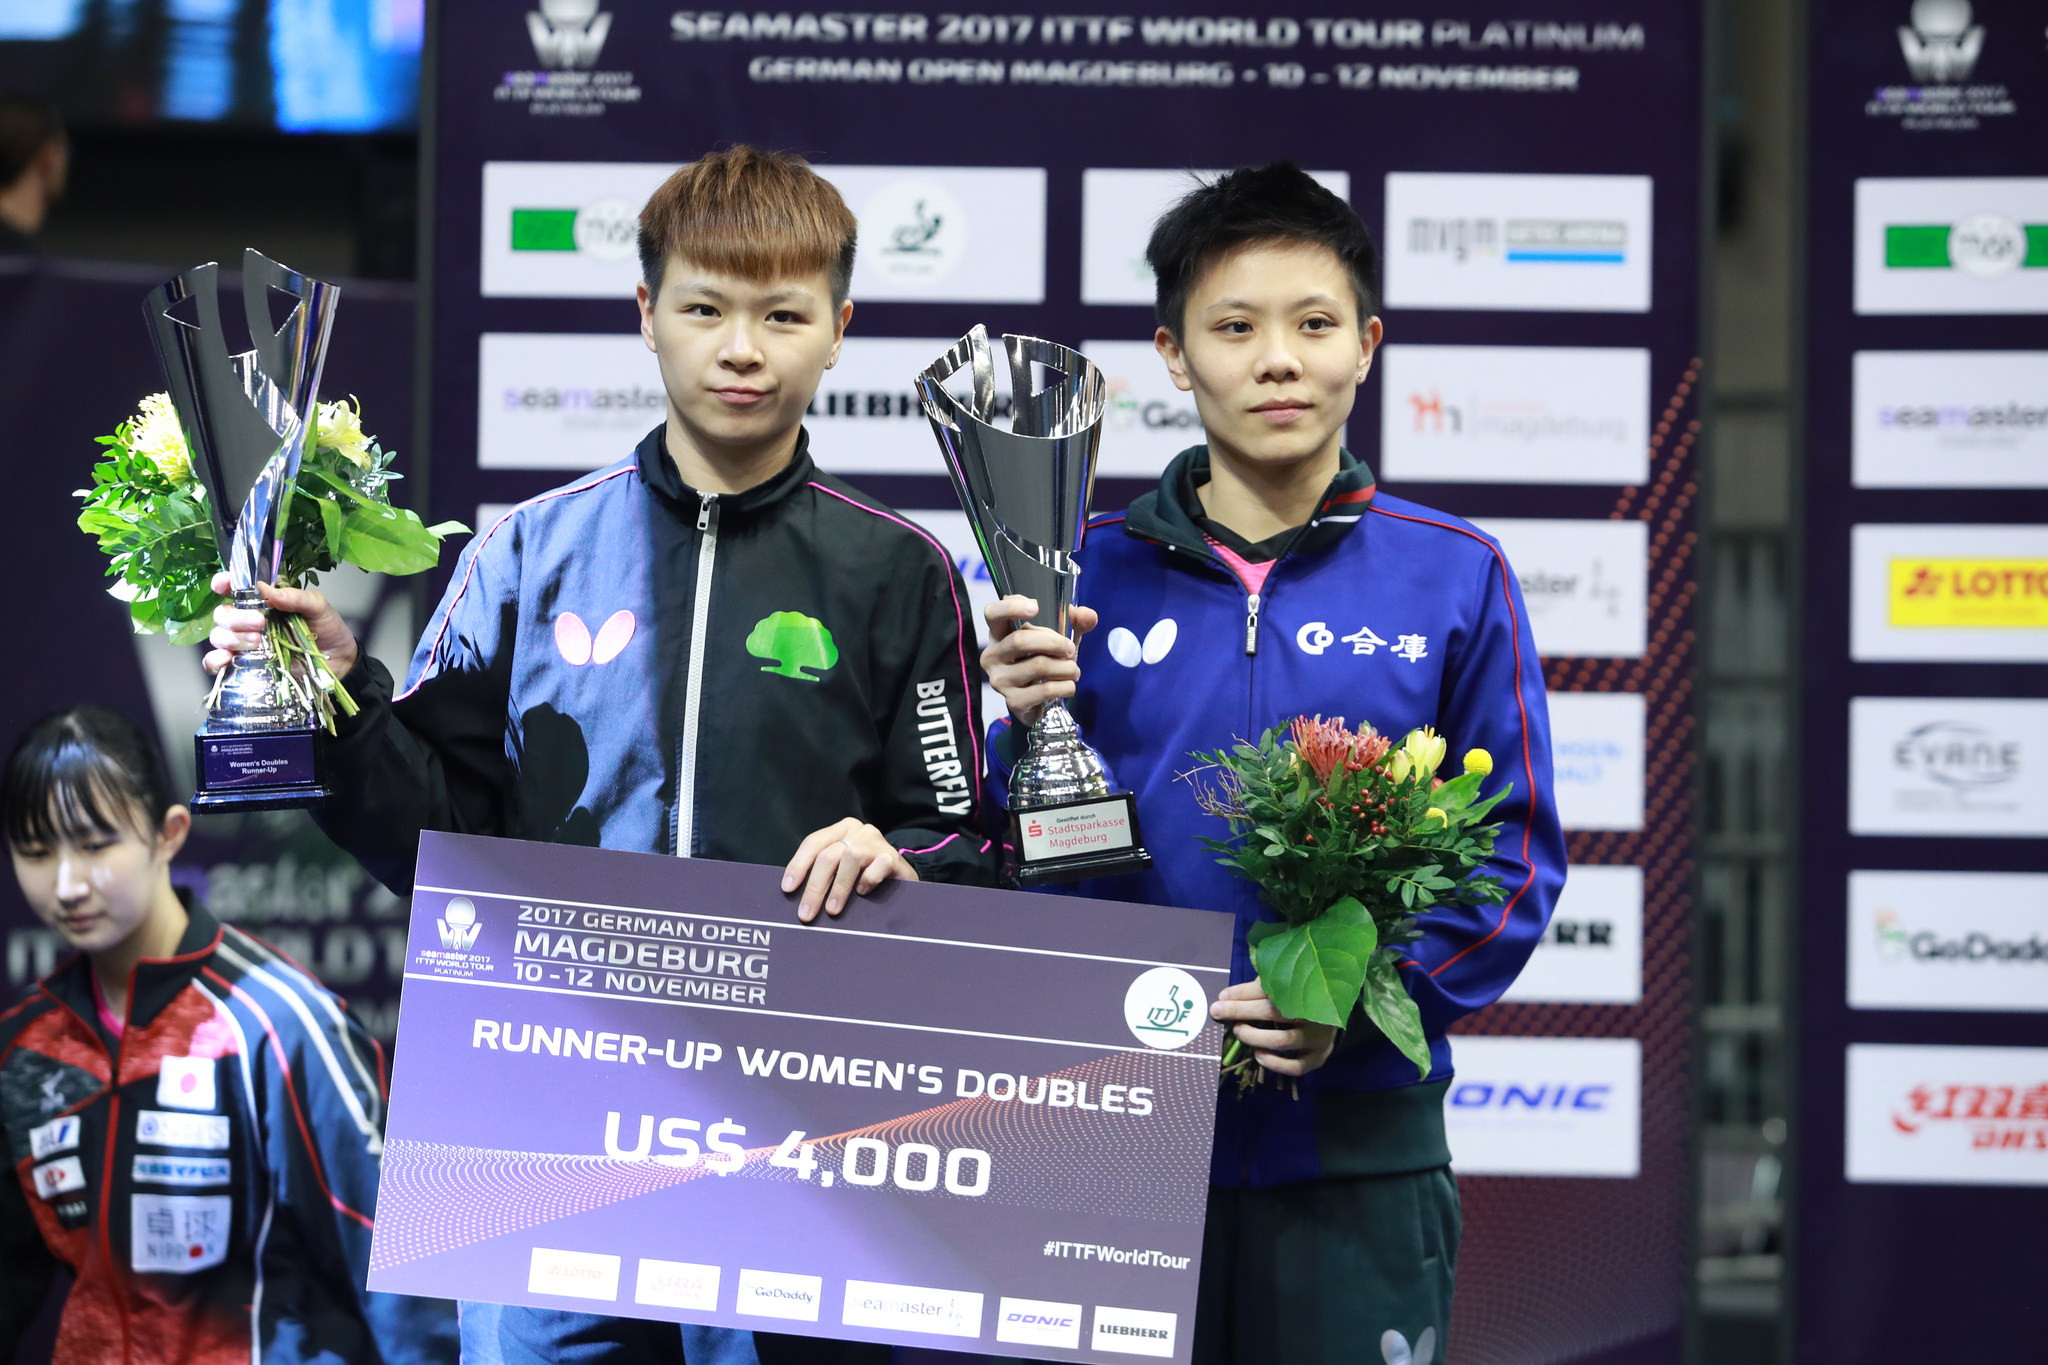 Taiwan's Cheng I-ching (鄭怡靜) and Chen Szu-yu (陳思羽) grabbed a silver in their doubles final match  on Sunday. (Photo from International Table Tennis Fe